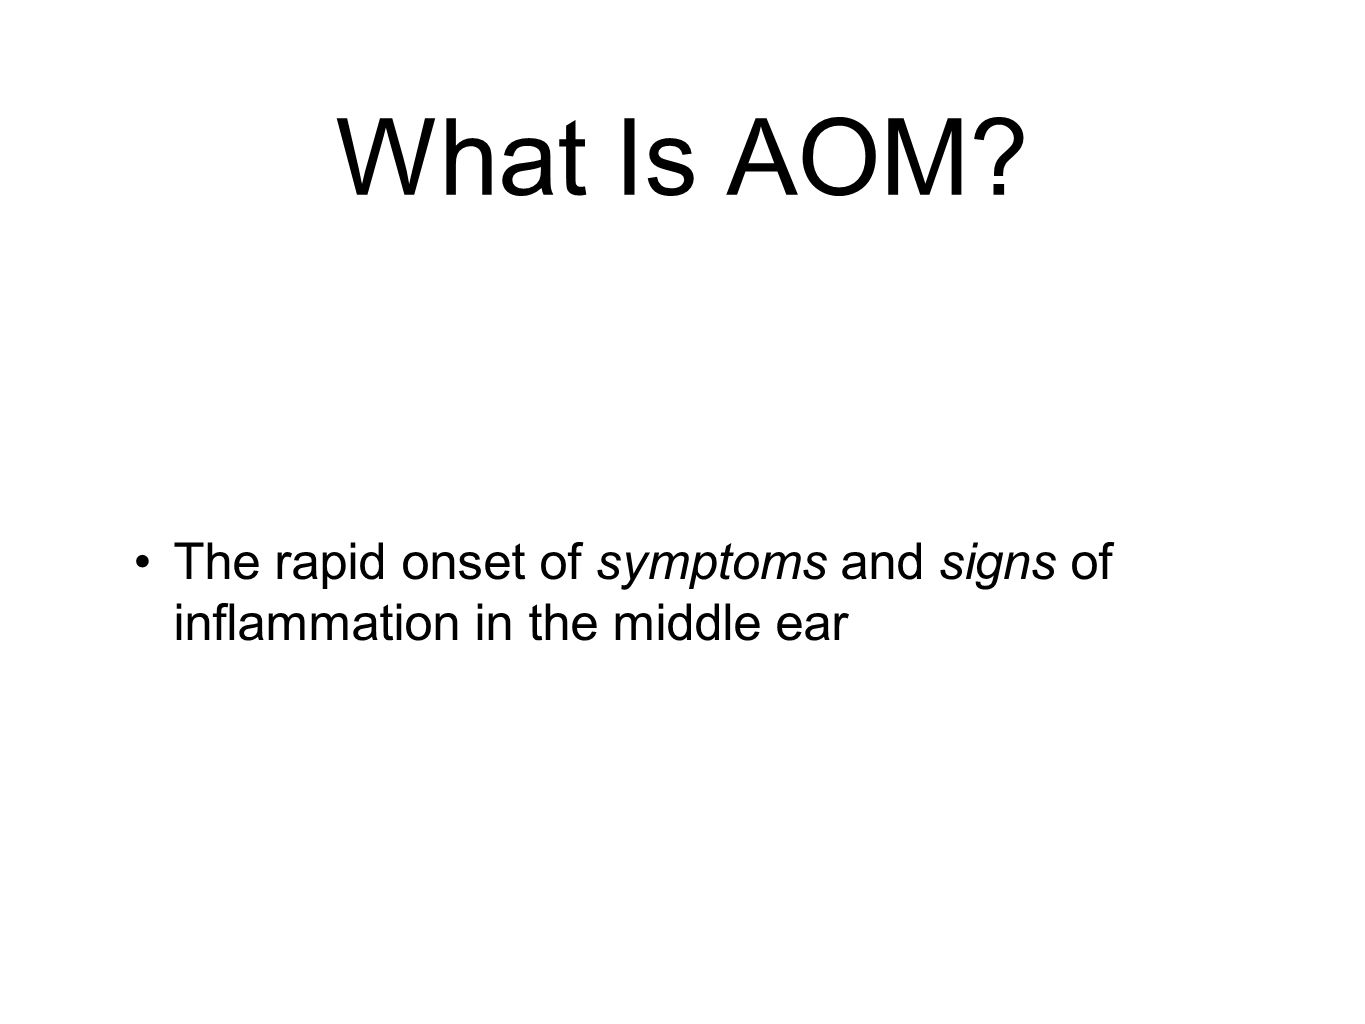 What Is AOM? The rapid onset of symptoms and signs of inflammation in the middle ear